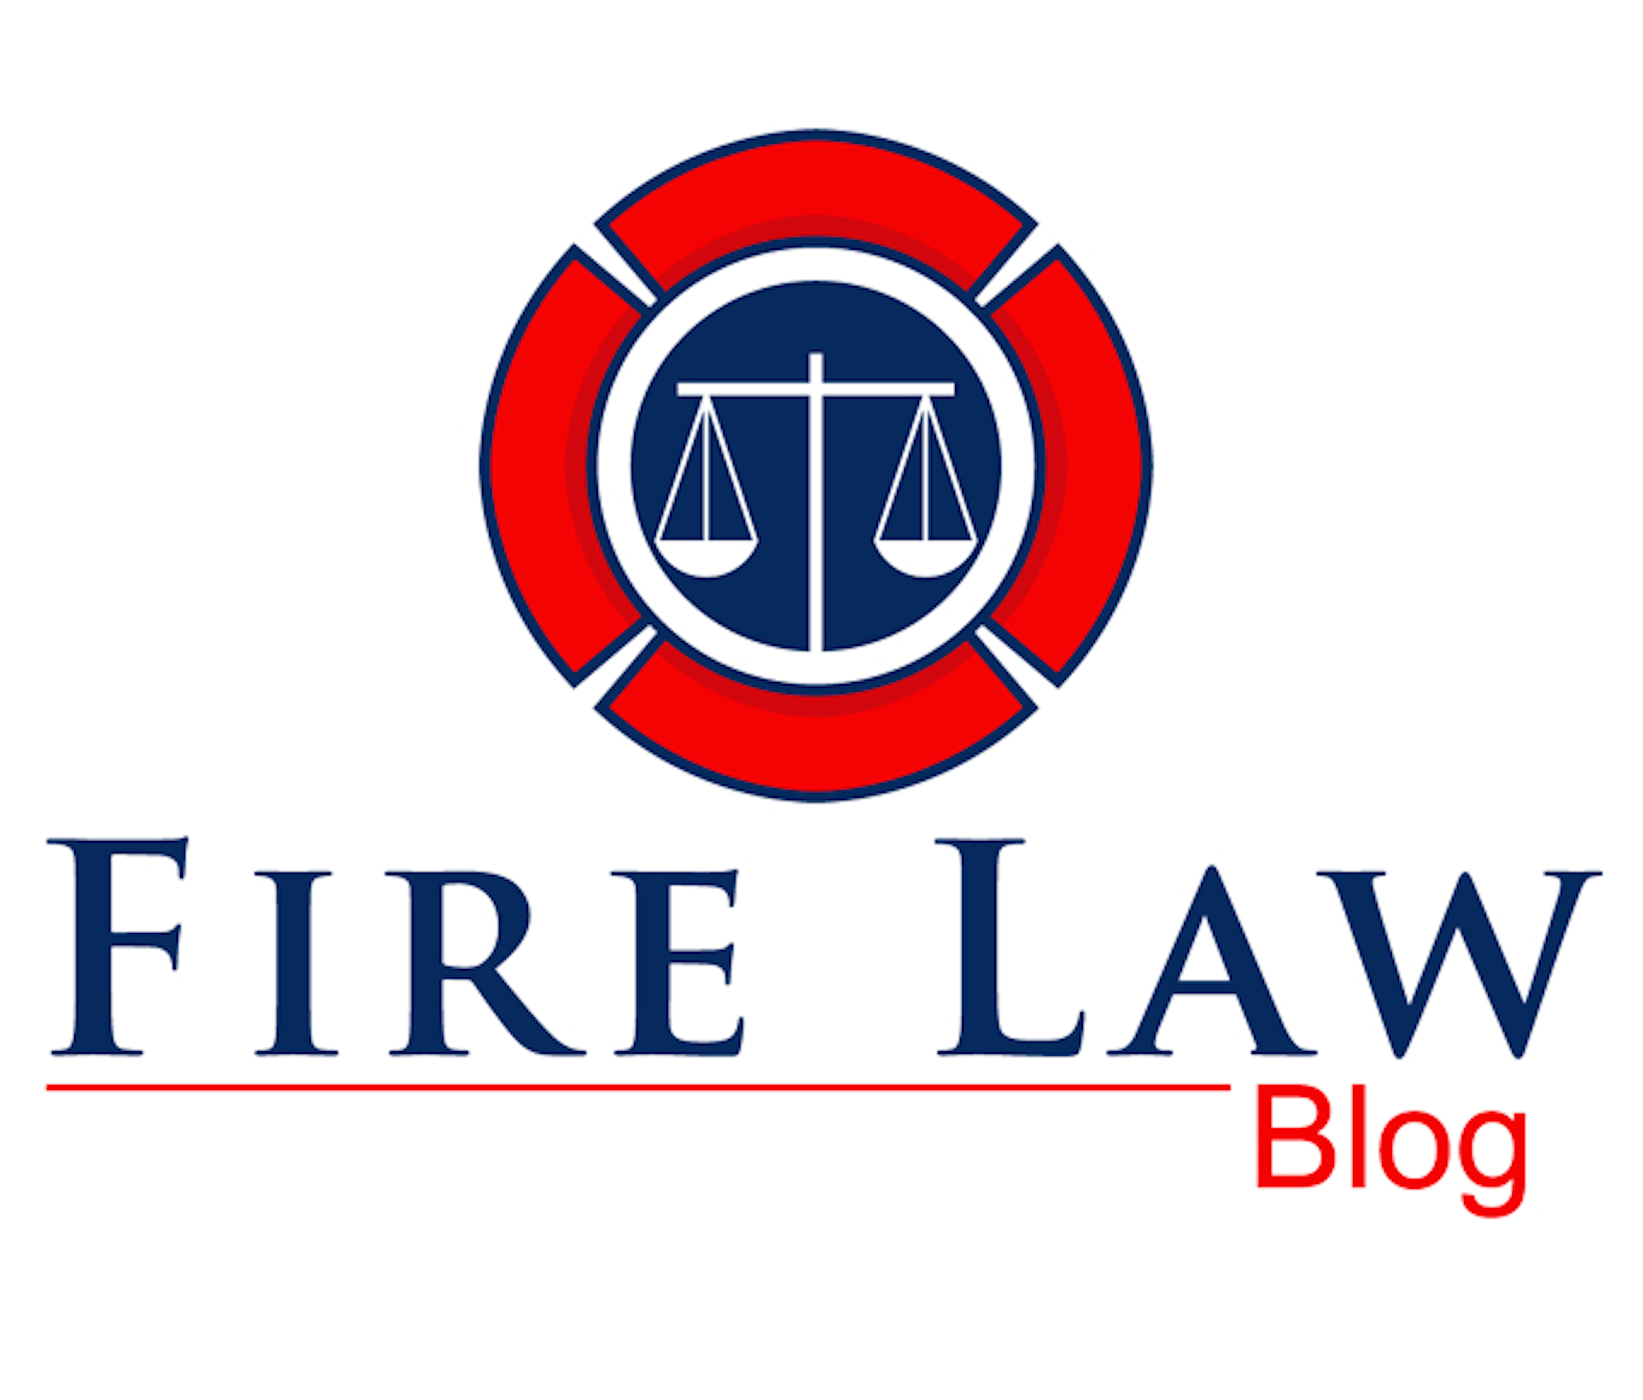 Fire Law Podcast - Episode 3: California Police Fire Wars